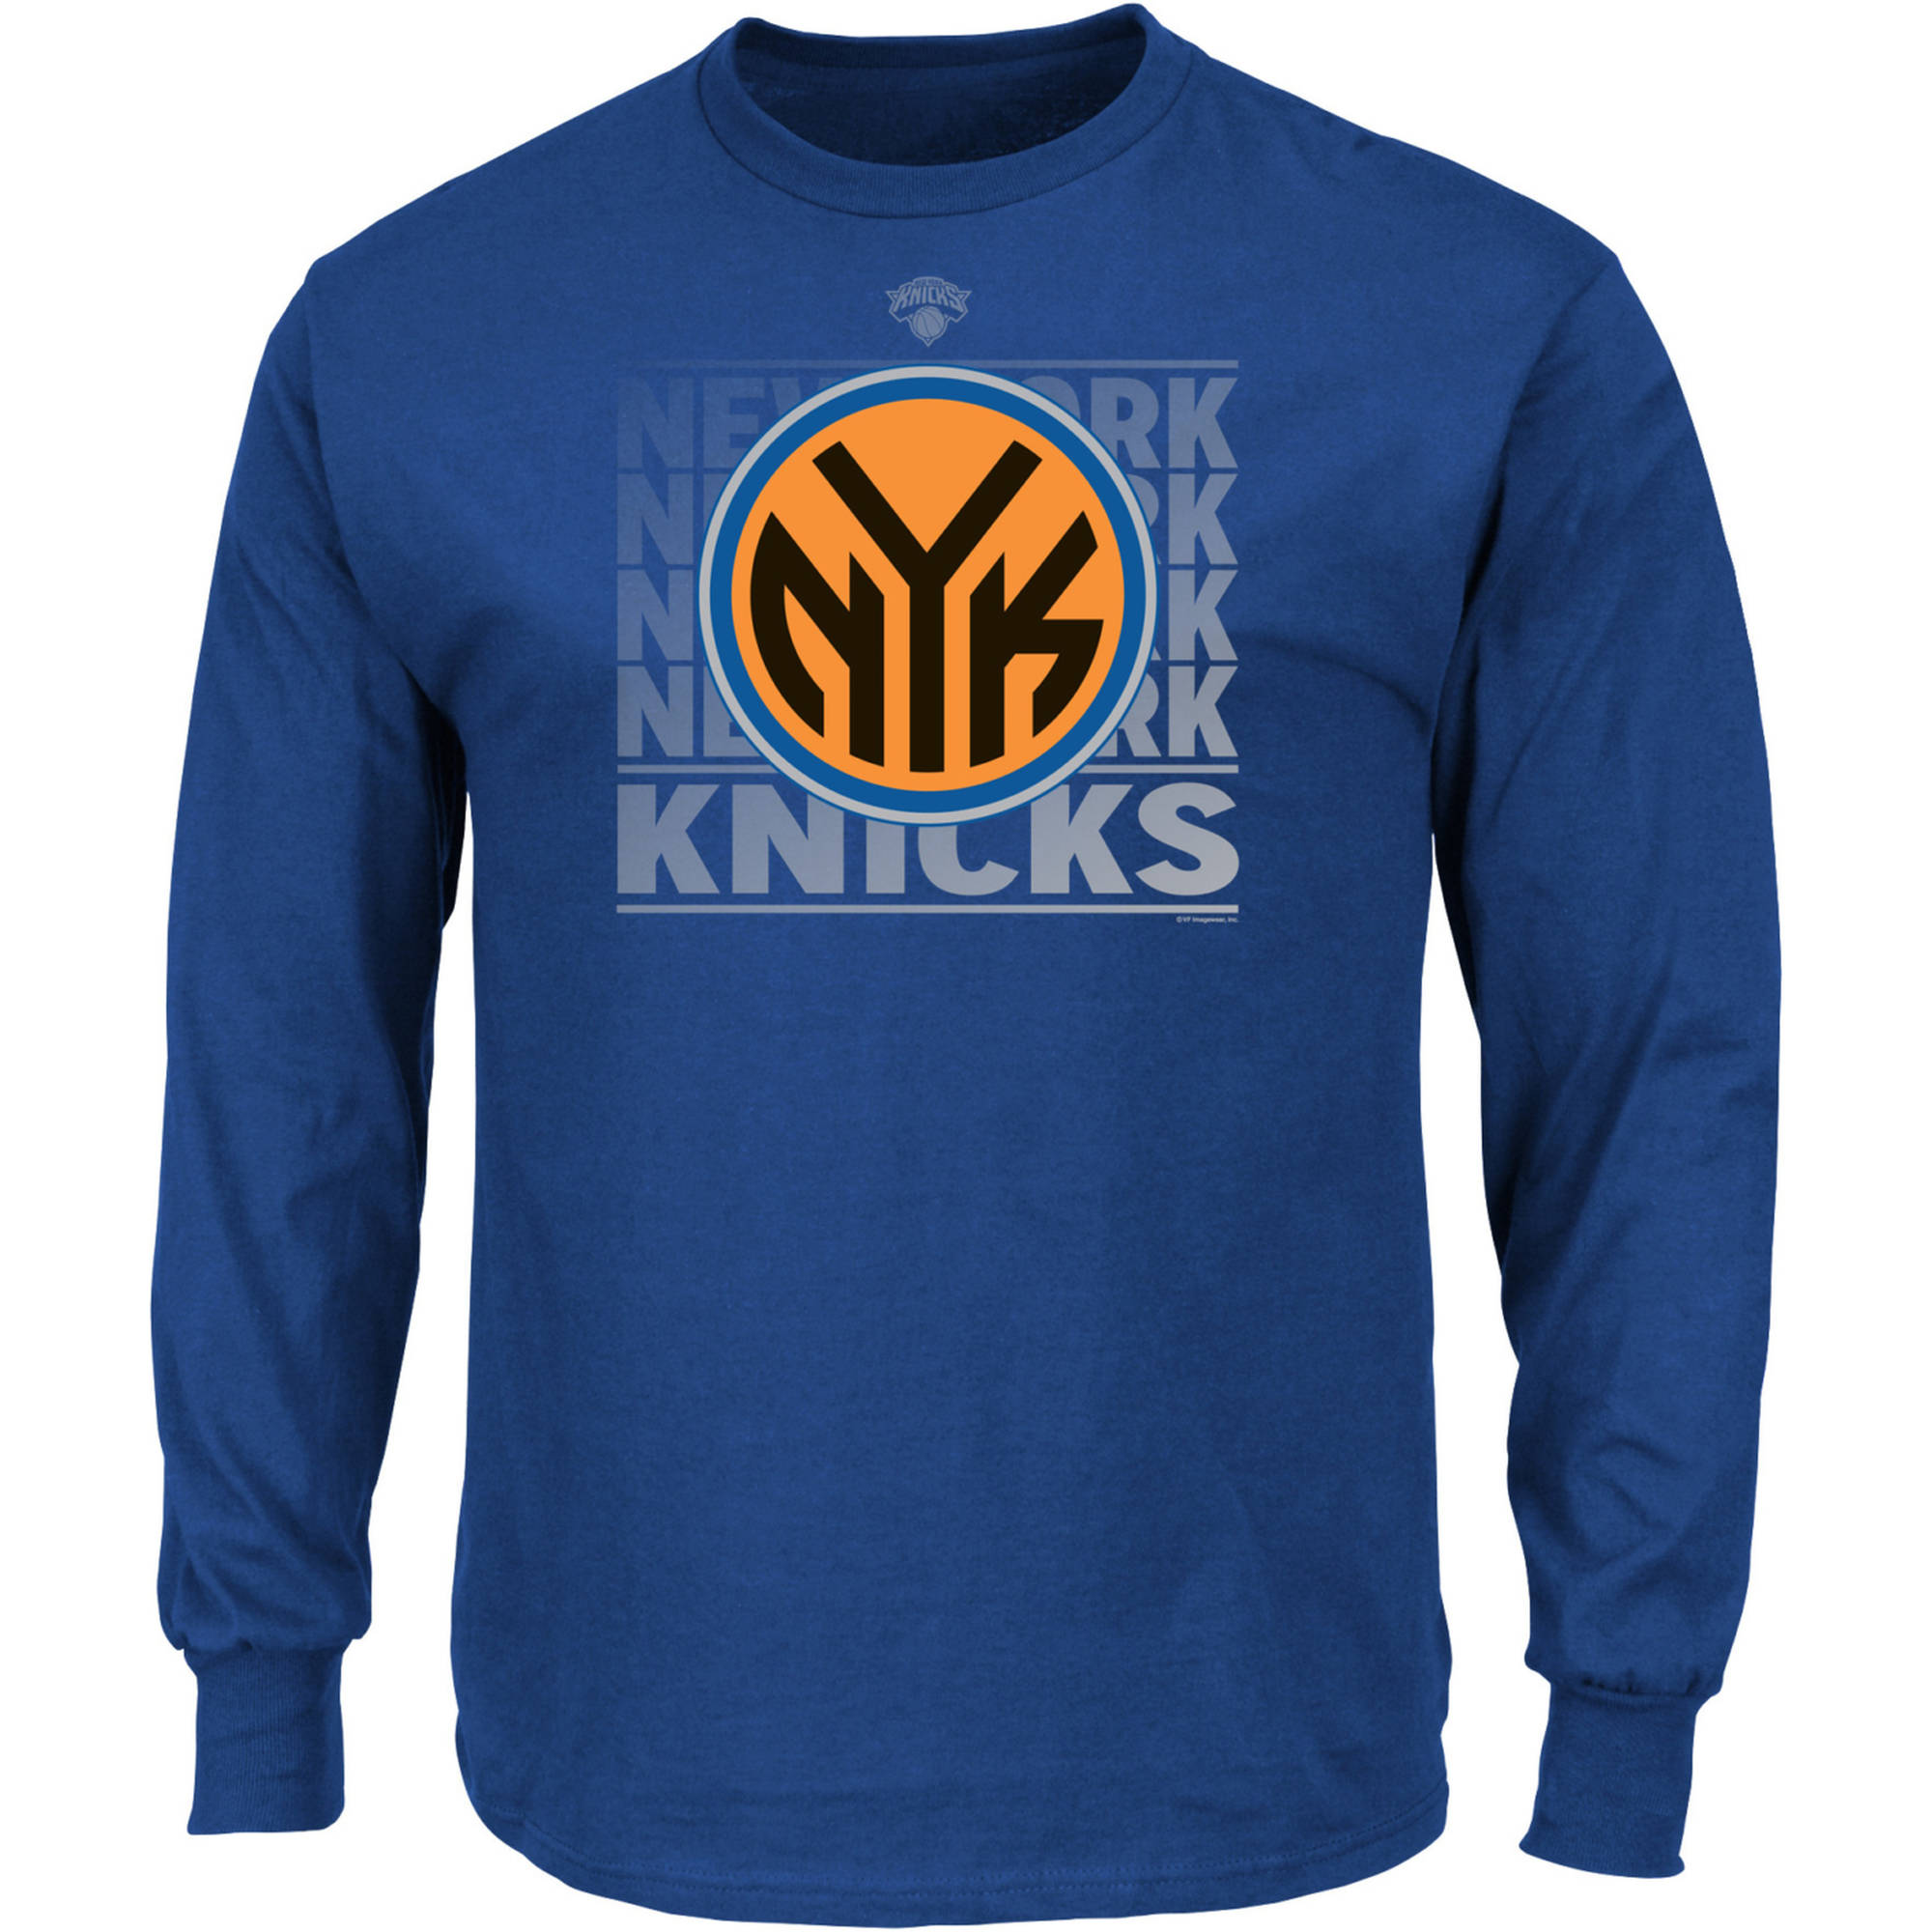 NBA New York Knicks Men's Long Sleeve Crew Neck Basic Tee